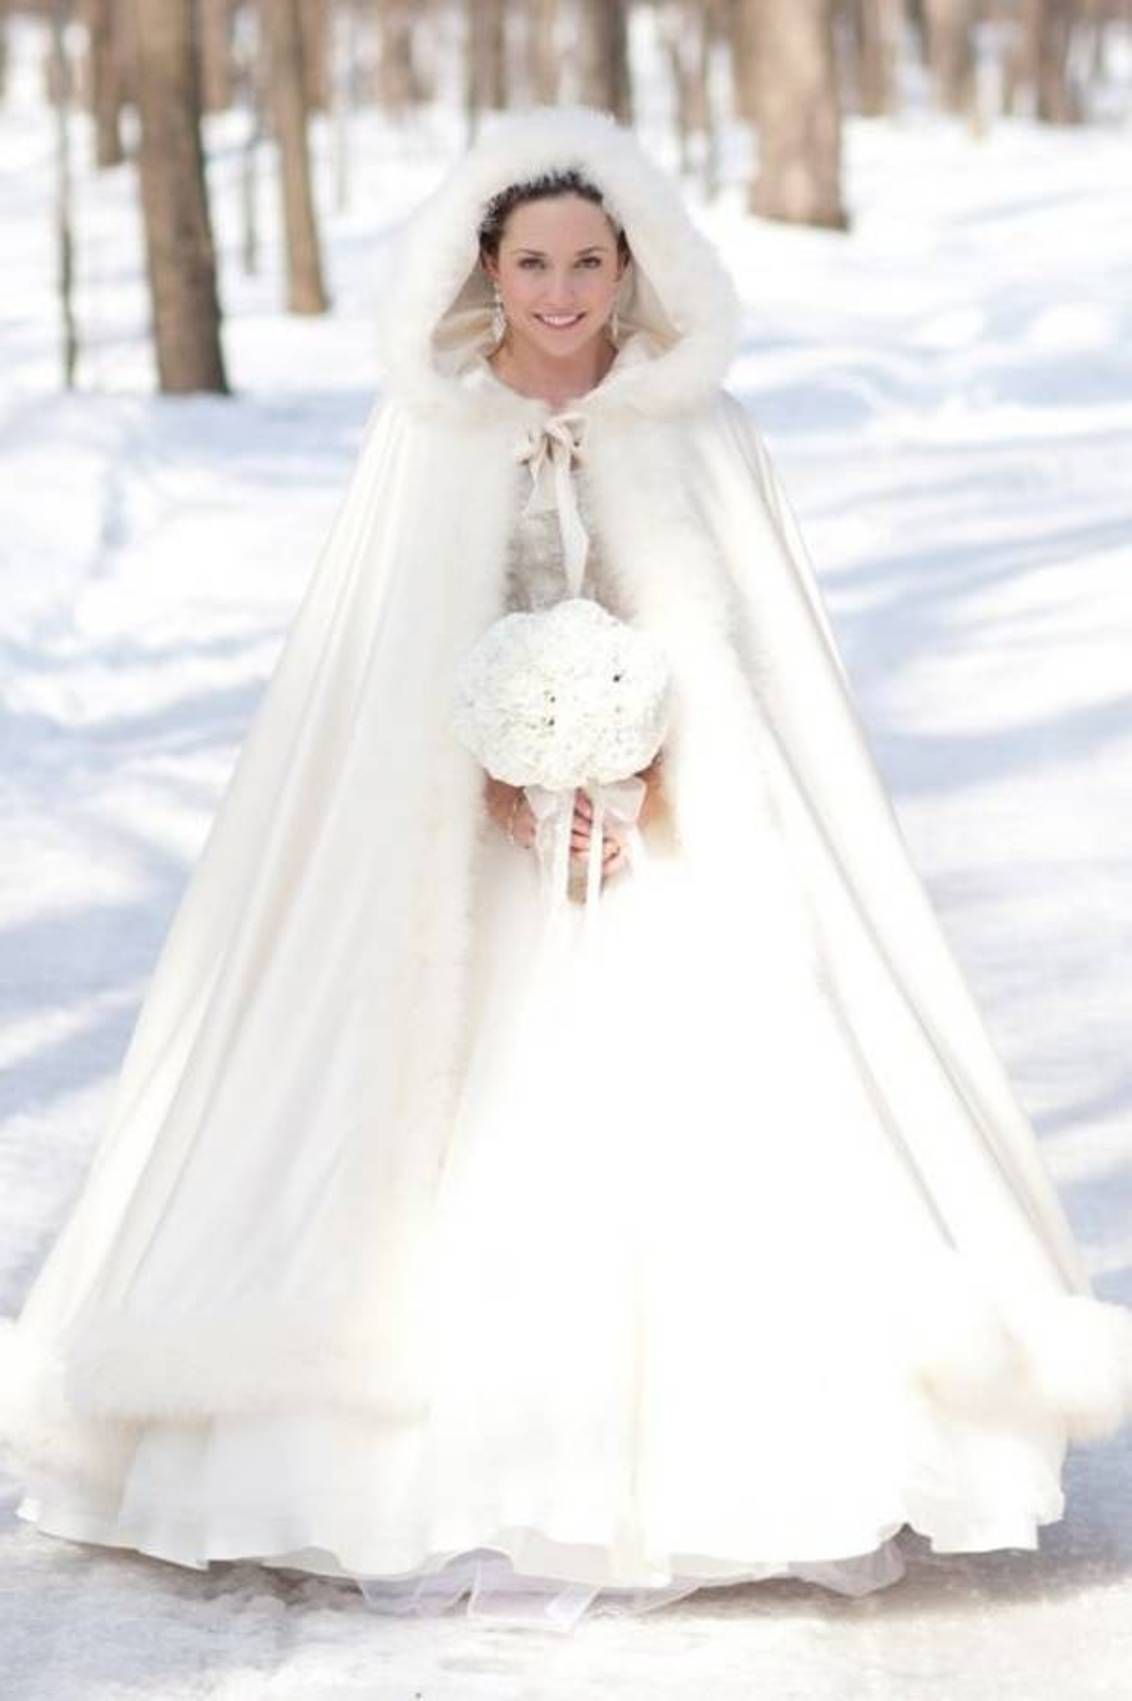 Why Winter Weddings Are So Romantic